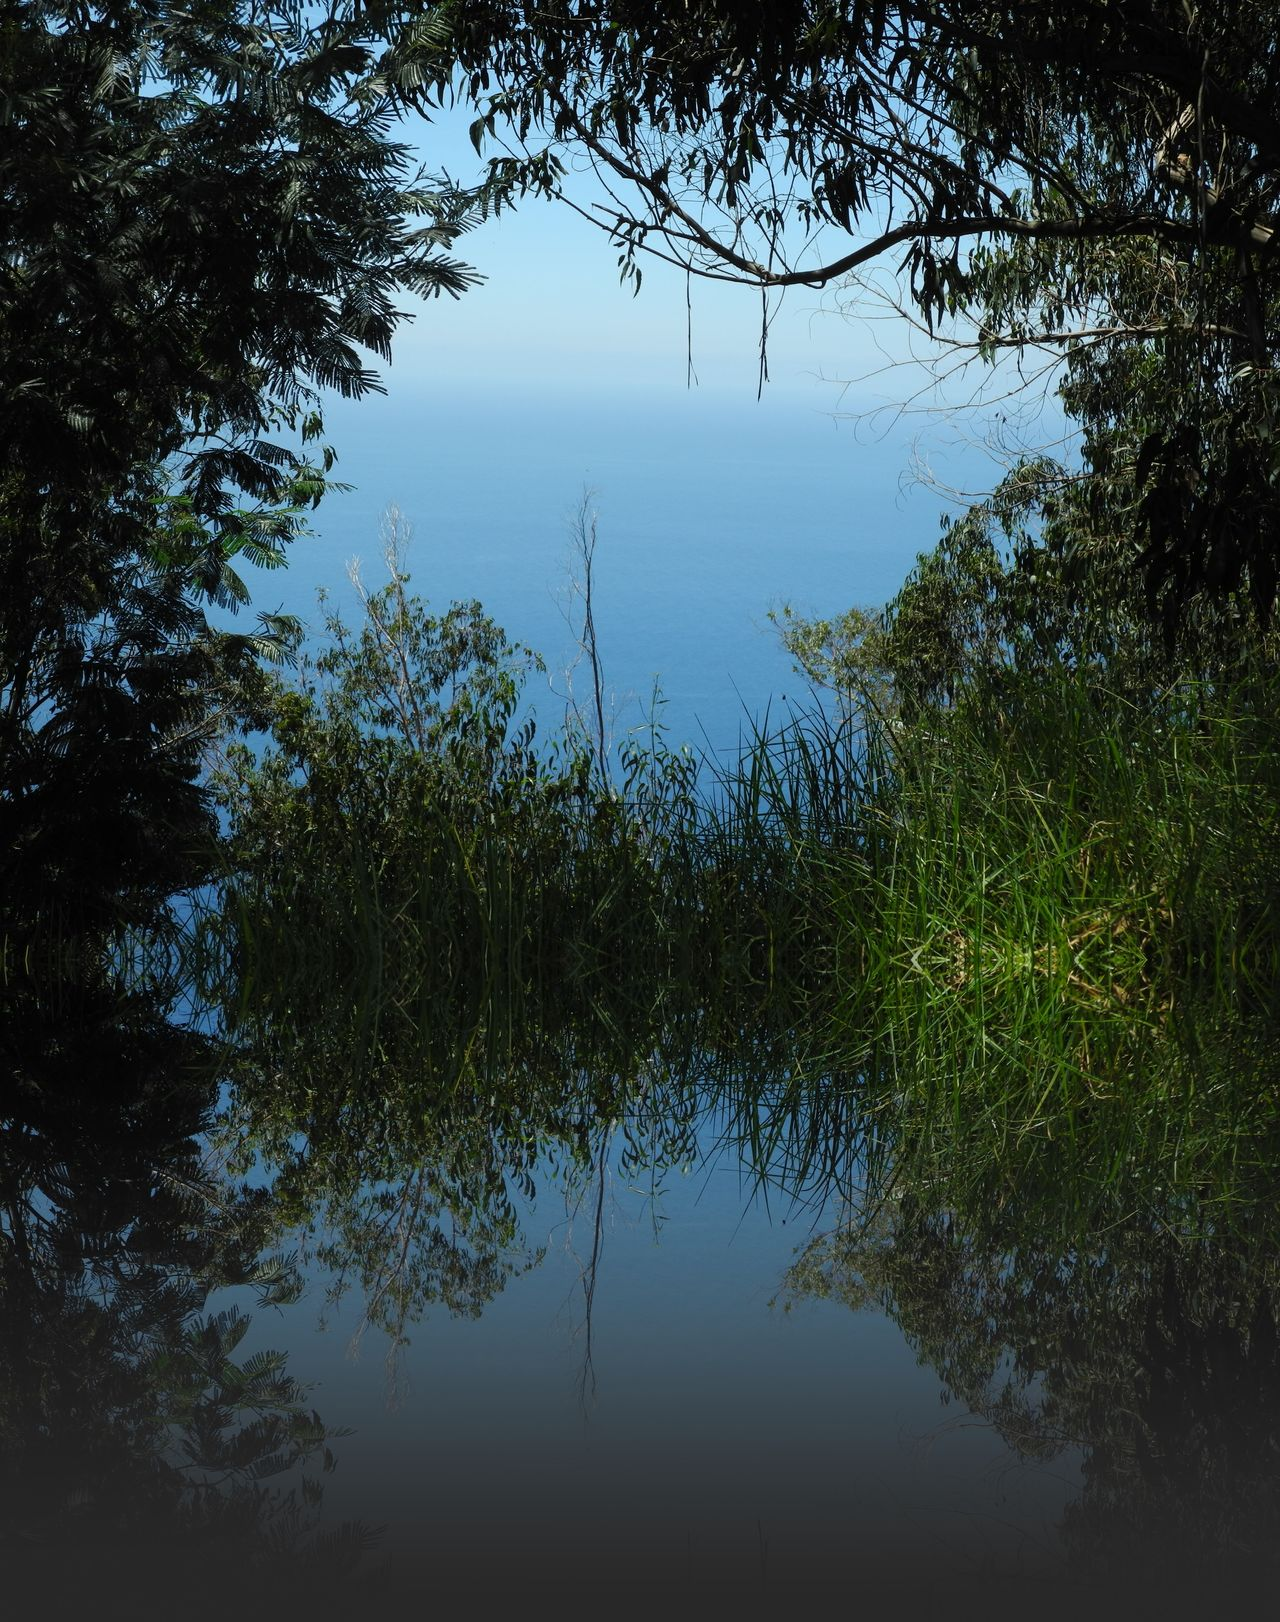 Beauty In Nature Day Grass Growth Lake Nature No People Outdoors Reflection Sky Tranquil Scene Tranquility Tree Water Reflection_collection Reflections Art Is Everywhere Art Unrealistic Dream Unreal Fantastic Two Worlds BYOPaper!